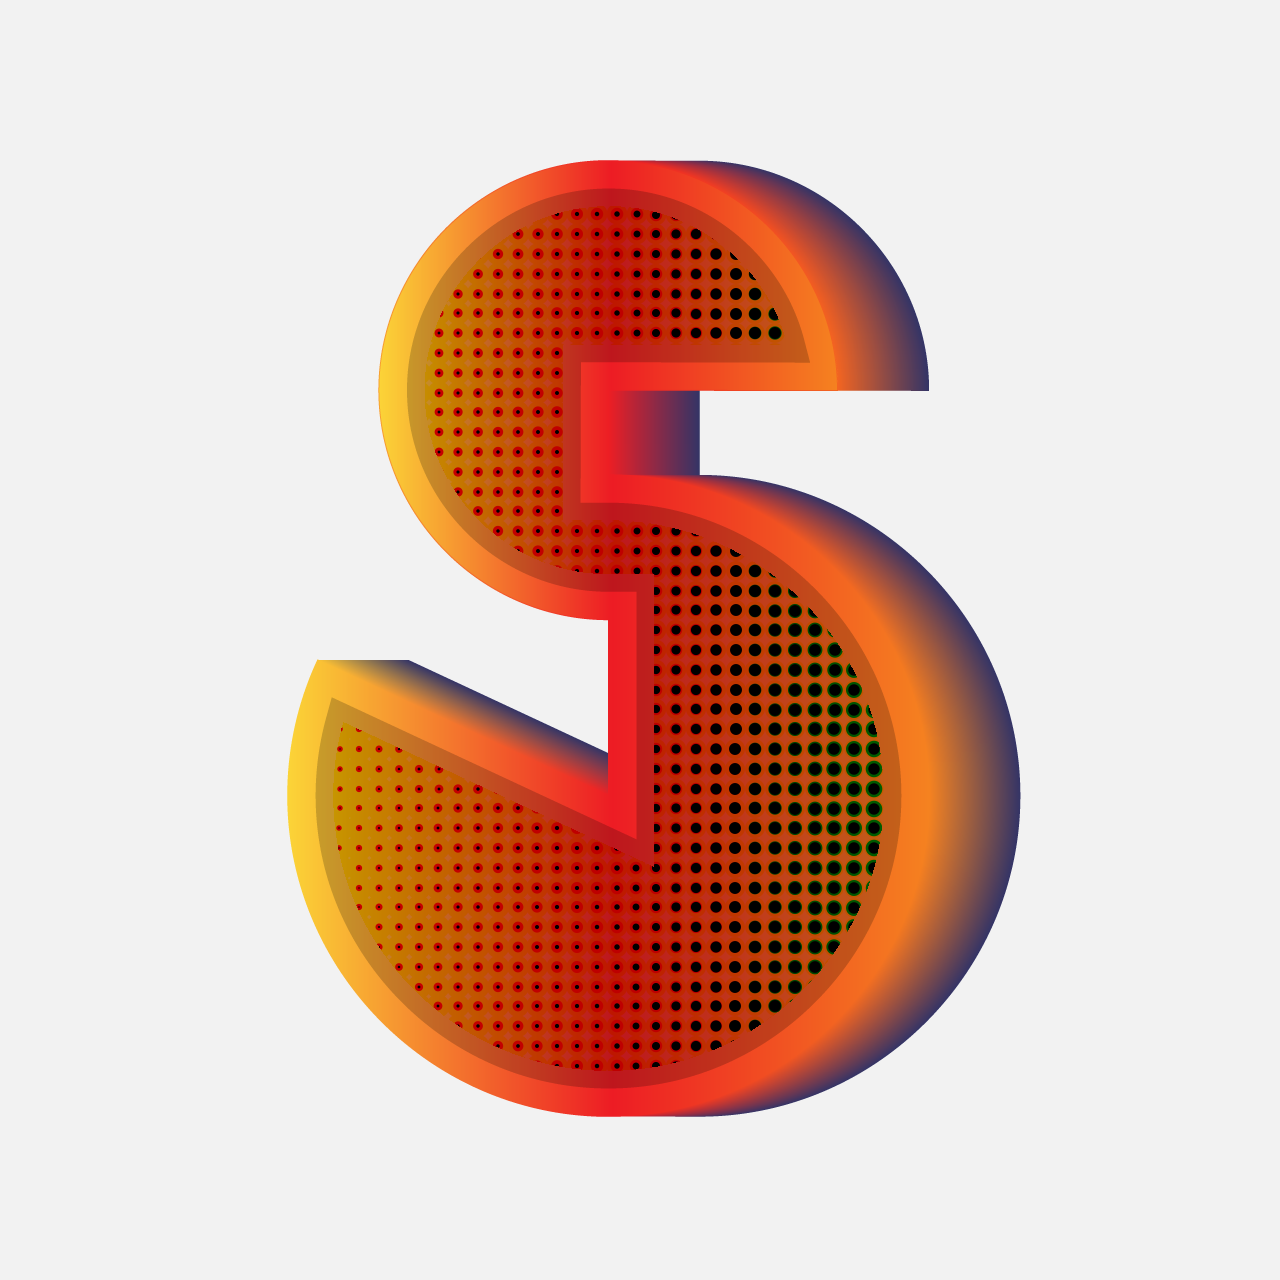 My 5 submission for 36 Days of Type